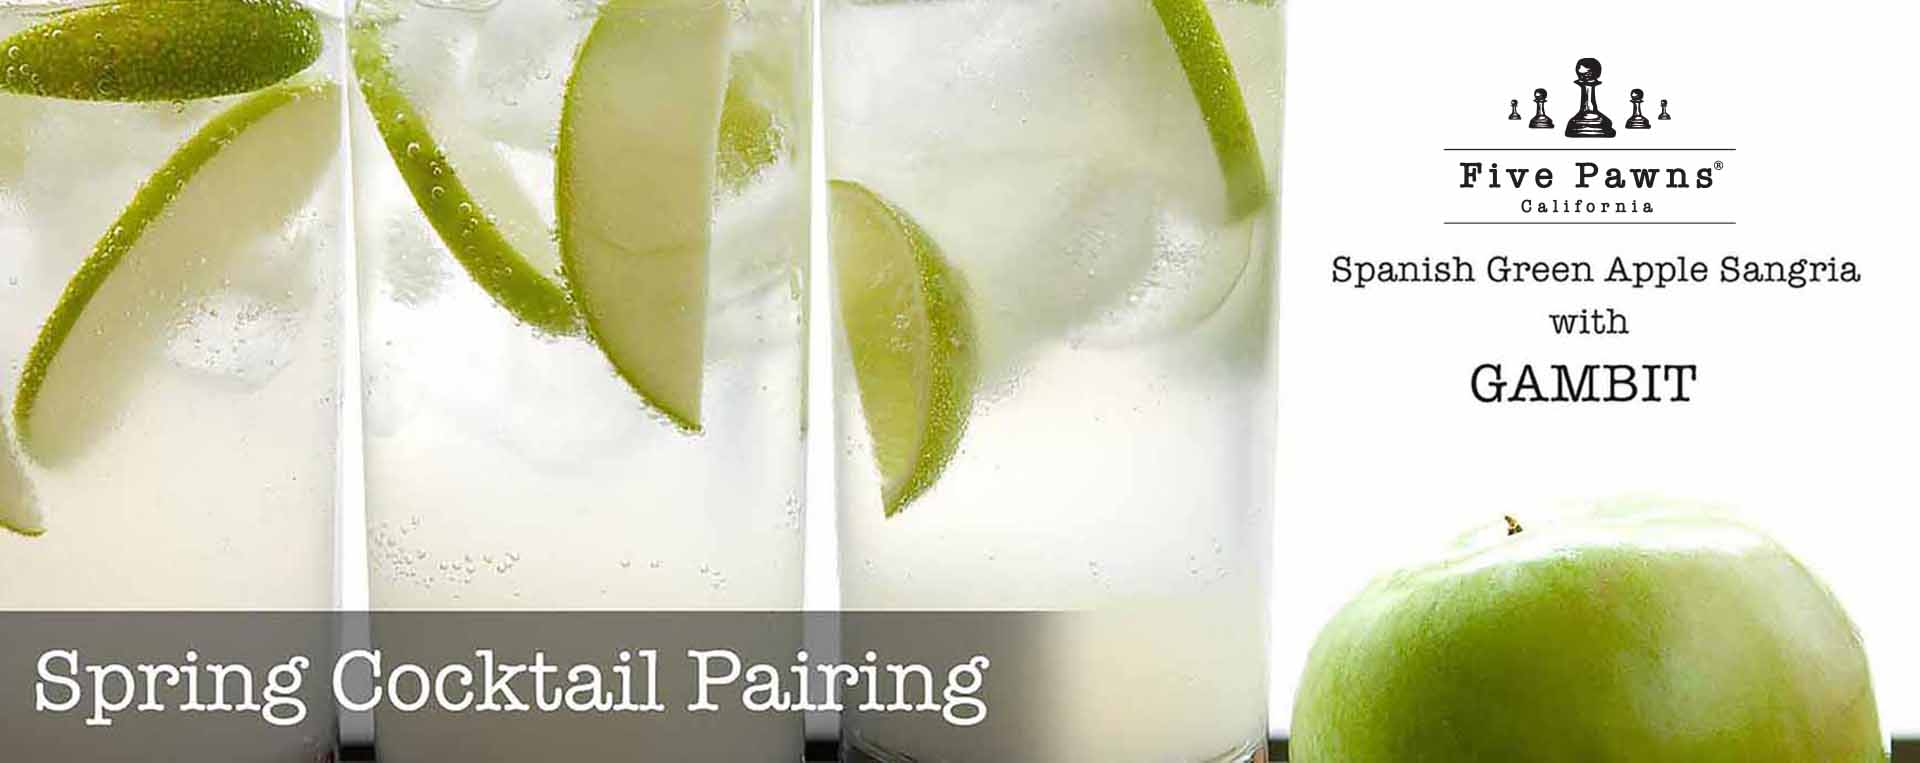 Spring Cocktail Pairing - Green Apple Sangria